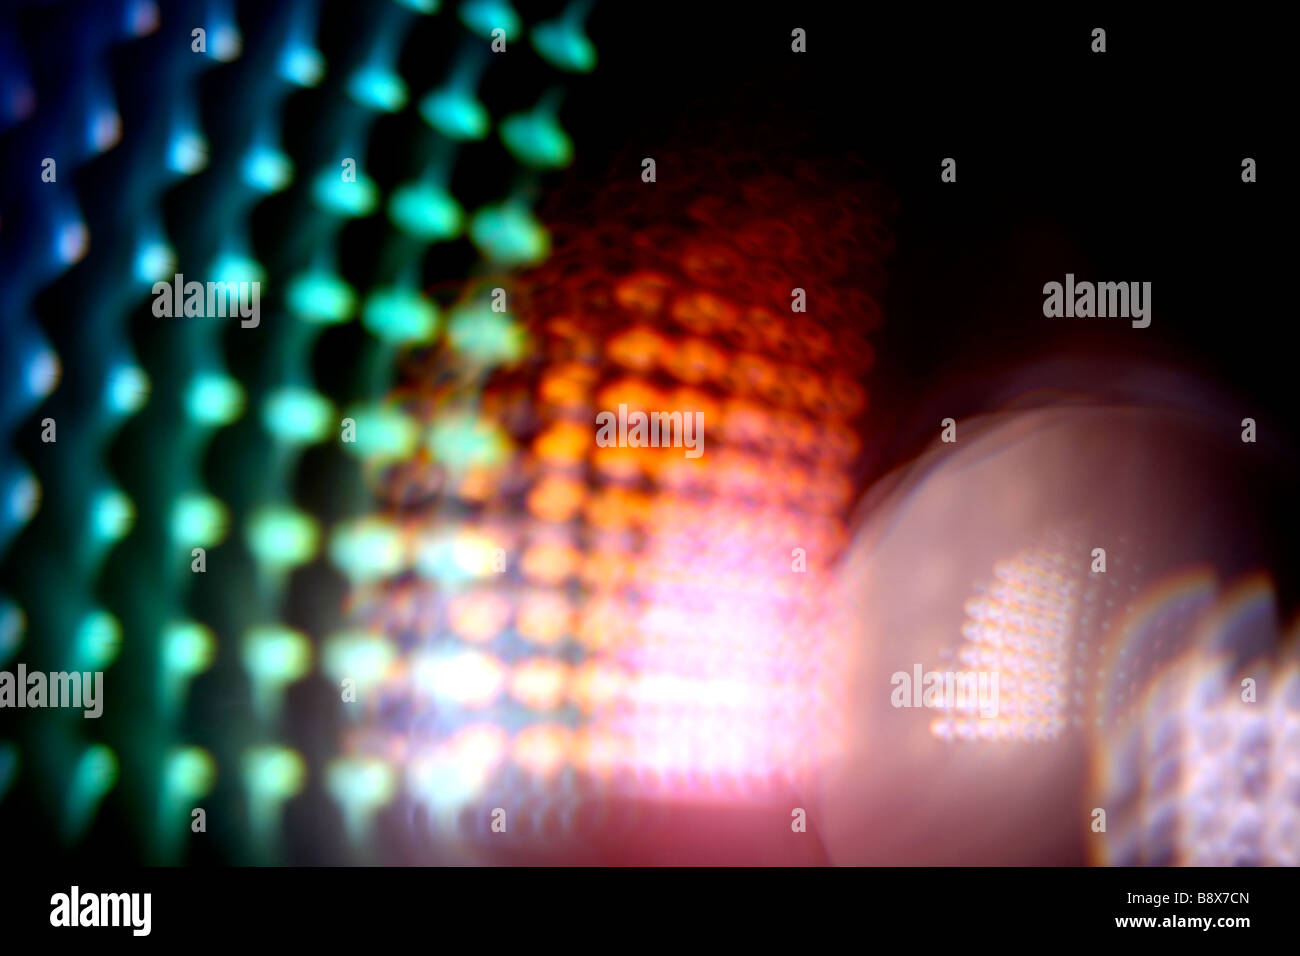 Abstract light in a lens, England - Stock Image